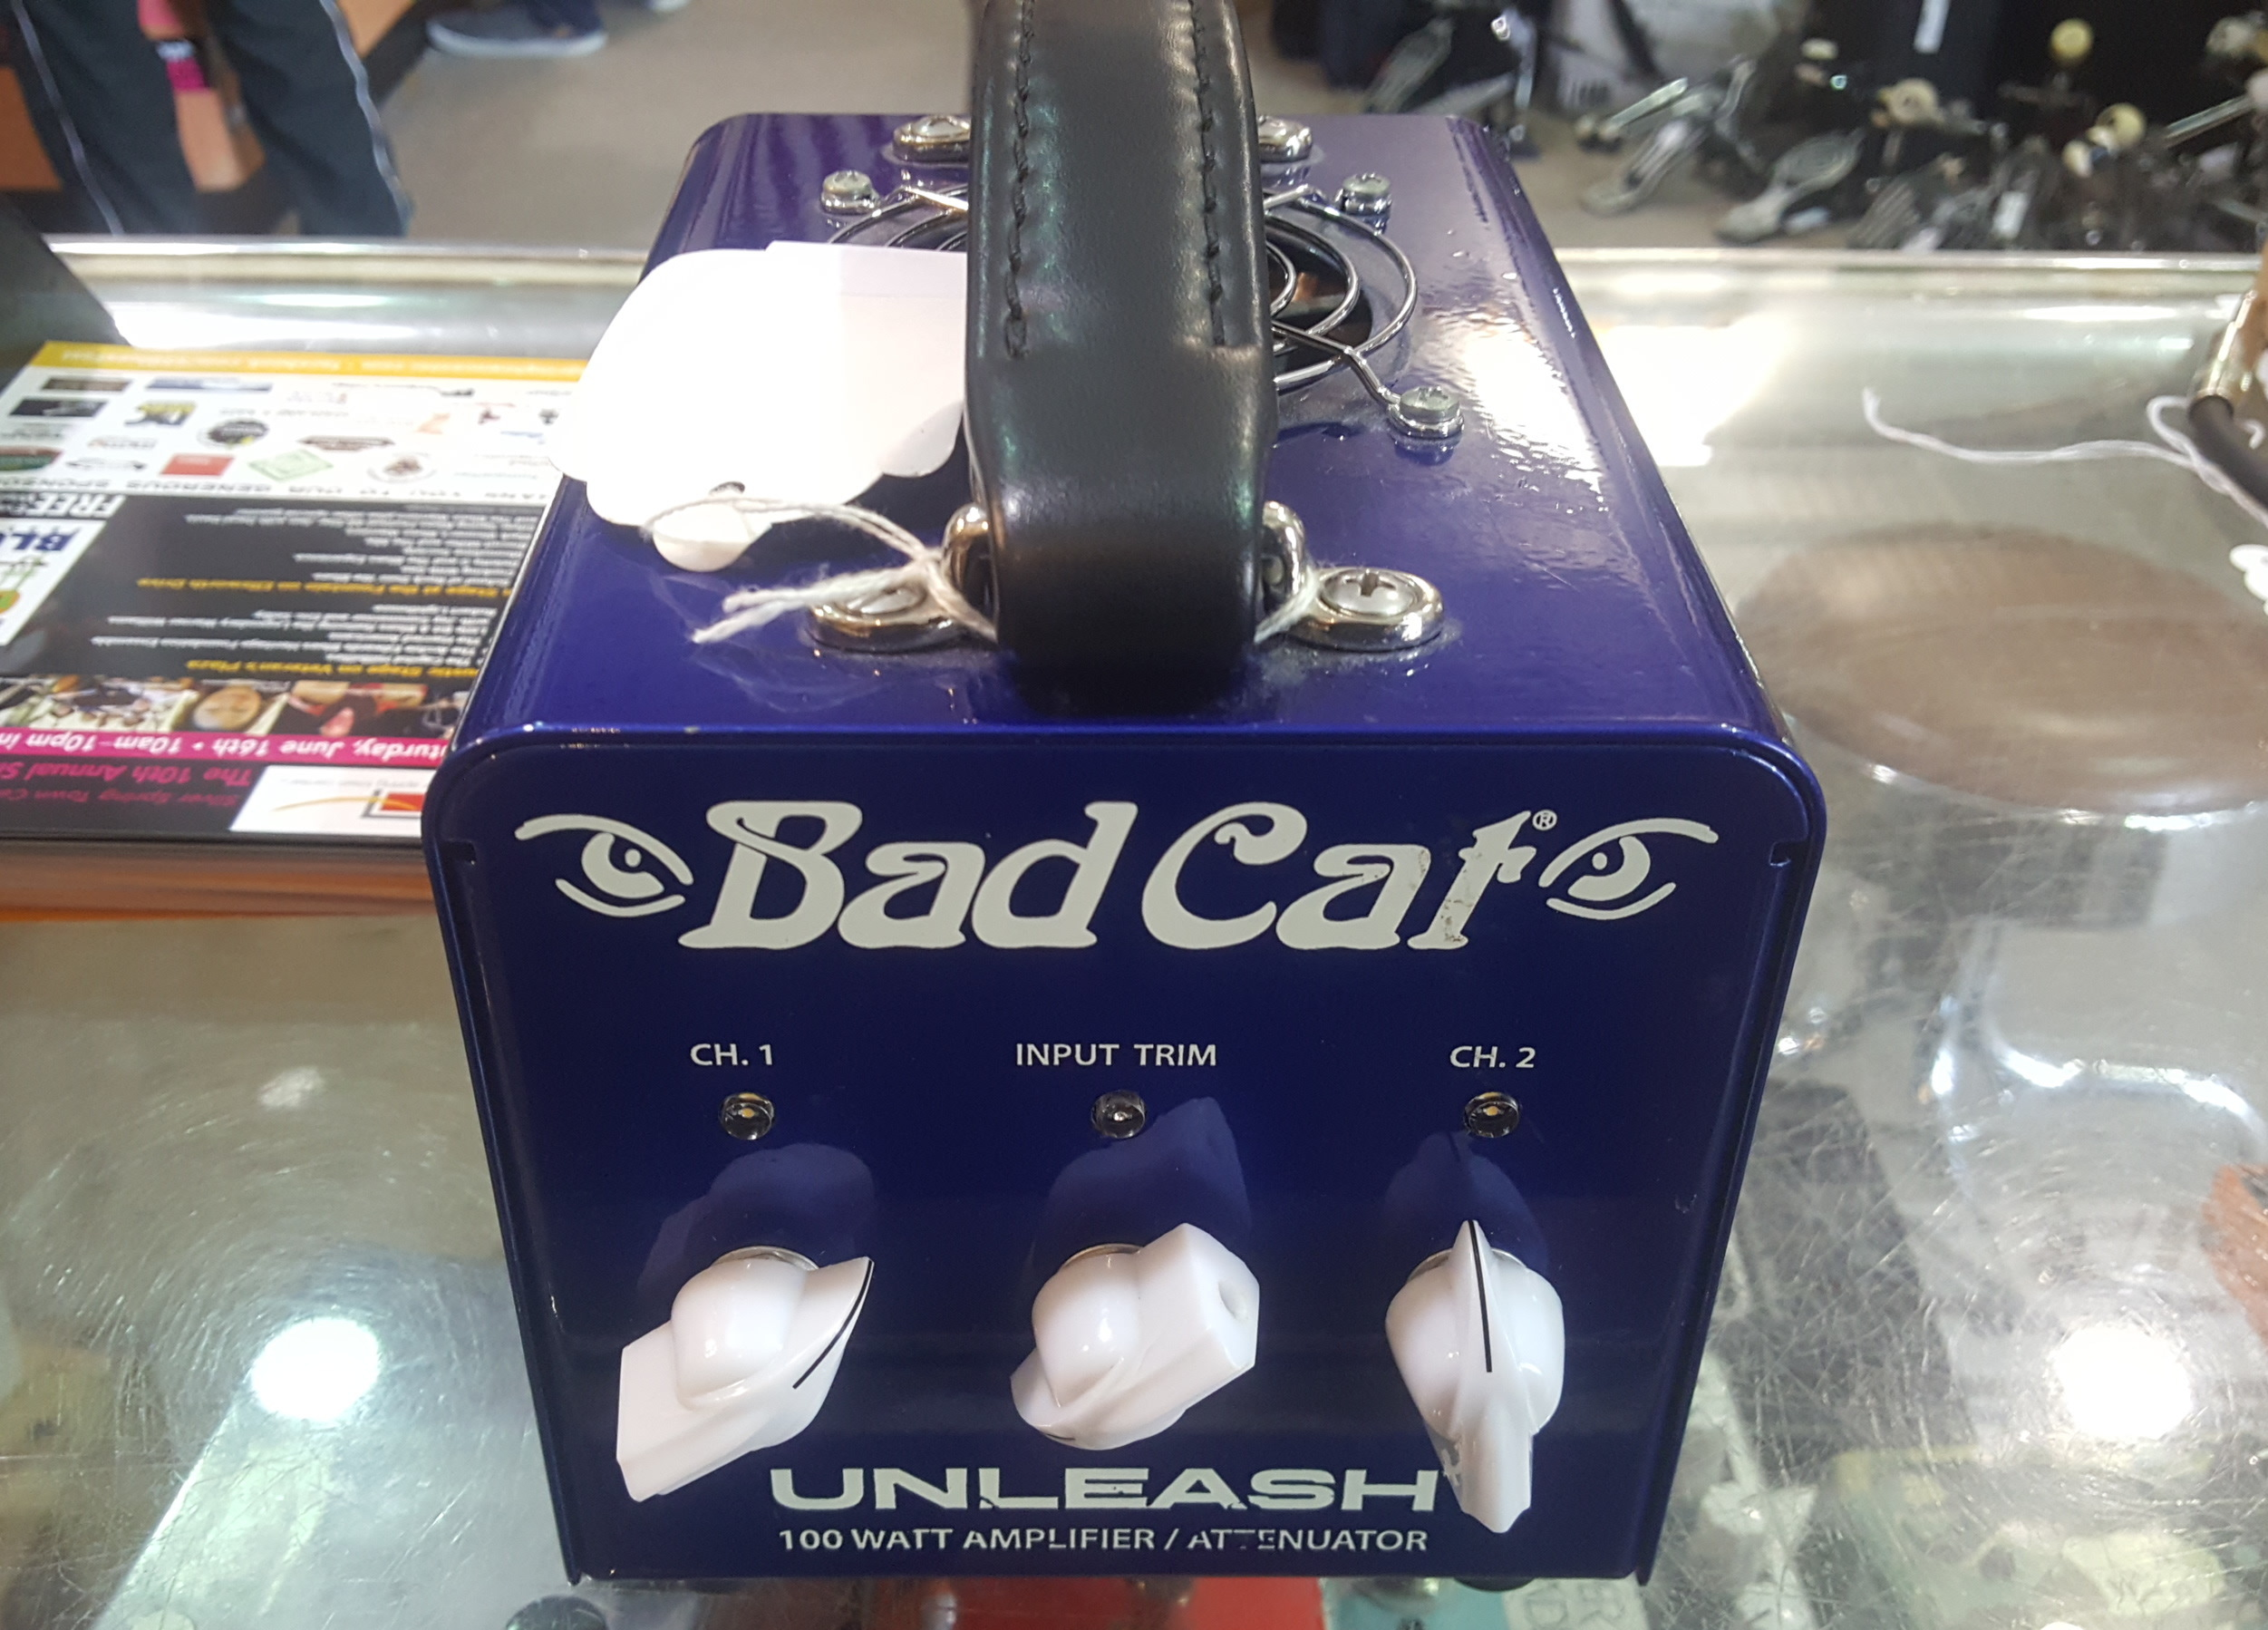 BAD CAT UNLEASH Re-Amplifier / Attenuator